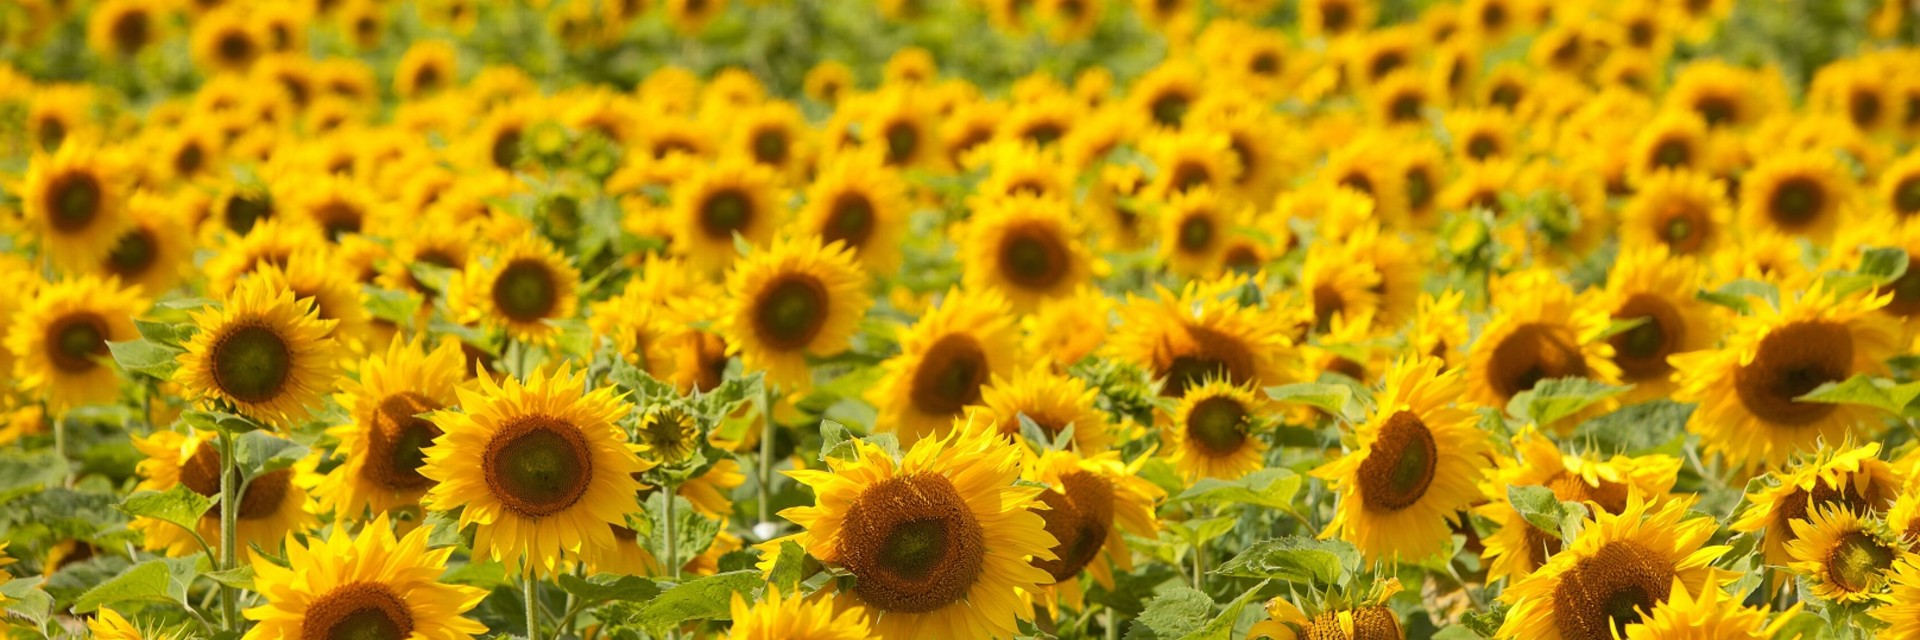 Strube seed sunflower field